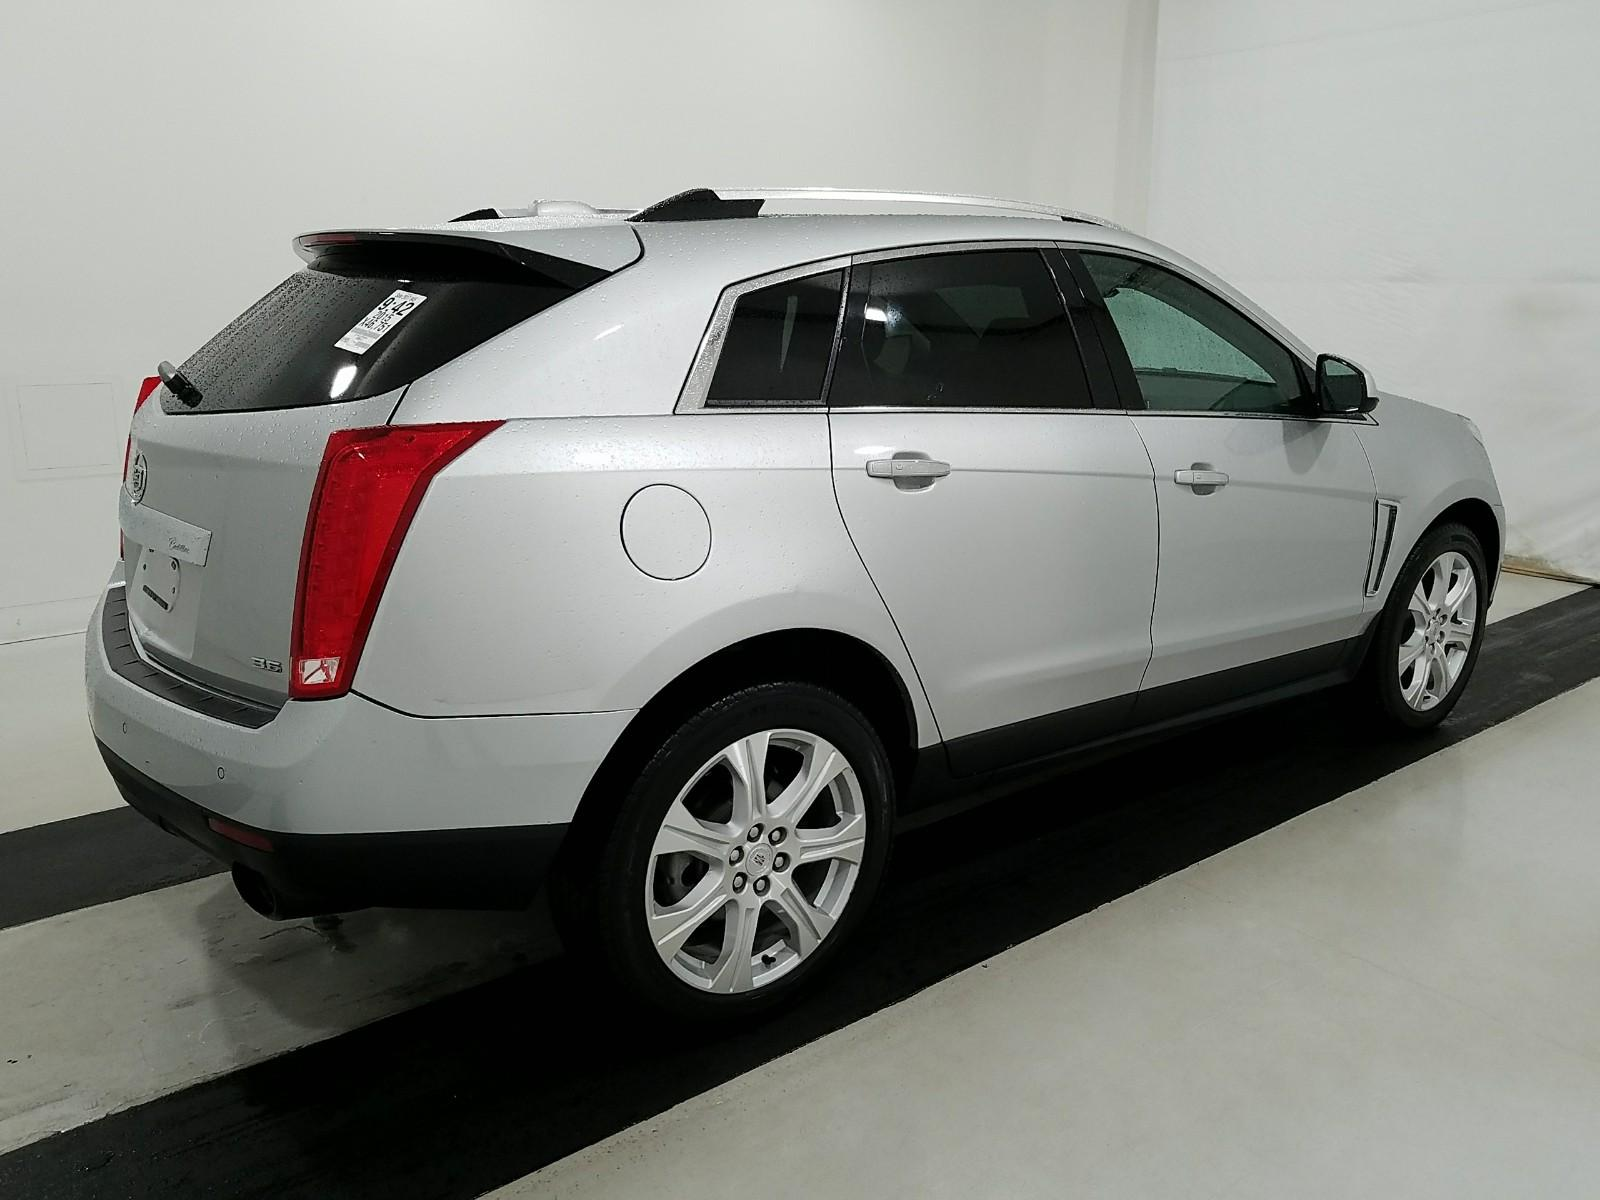 new vehicle serving in dp cadillac hammond for photo sale vehicles srx la vehiclesearchresults